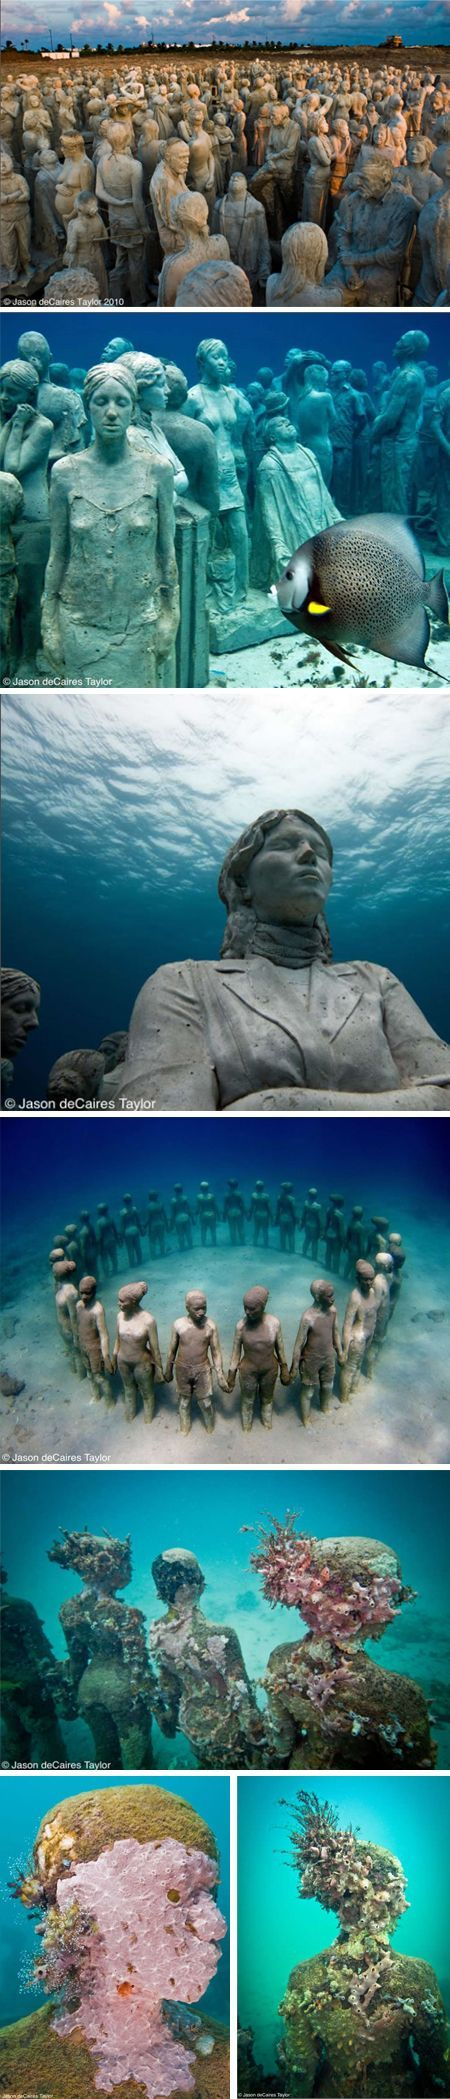 Underwater statuary, Cancun, Mexico